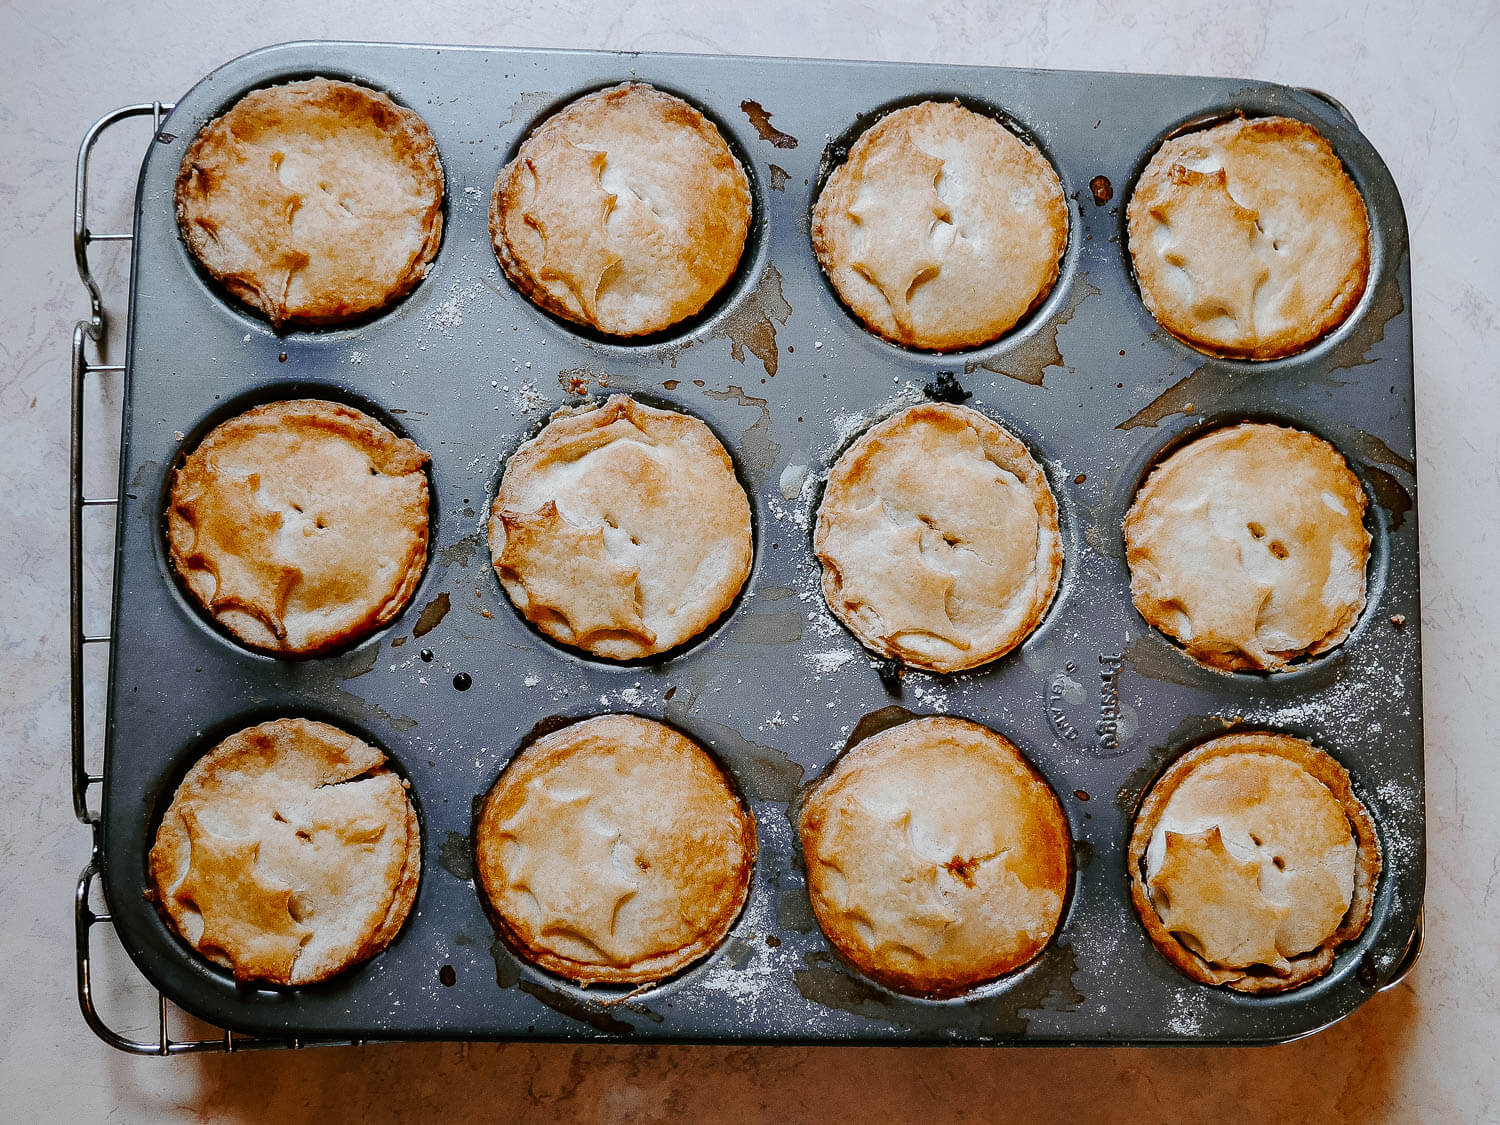 Homemade mince pies in a baking tray fresh form the oven